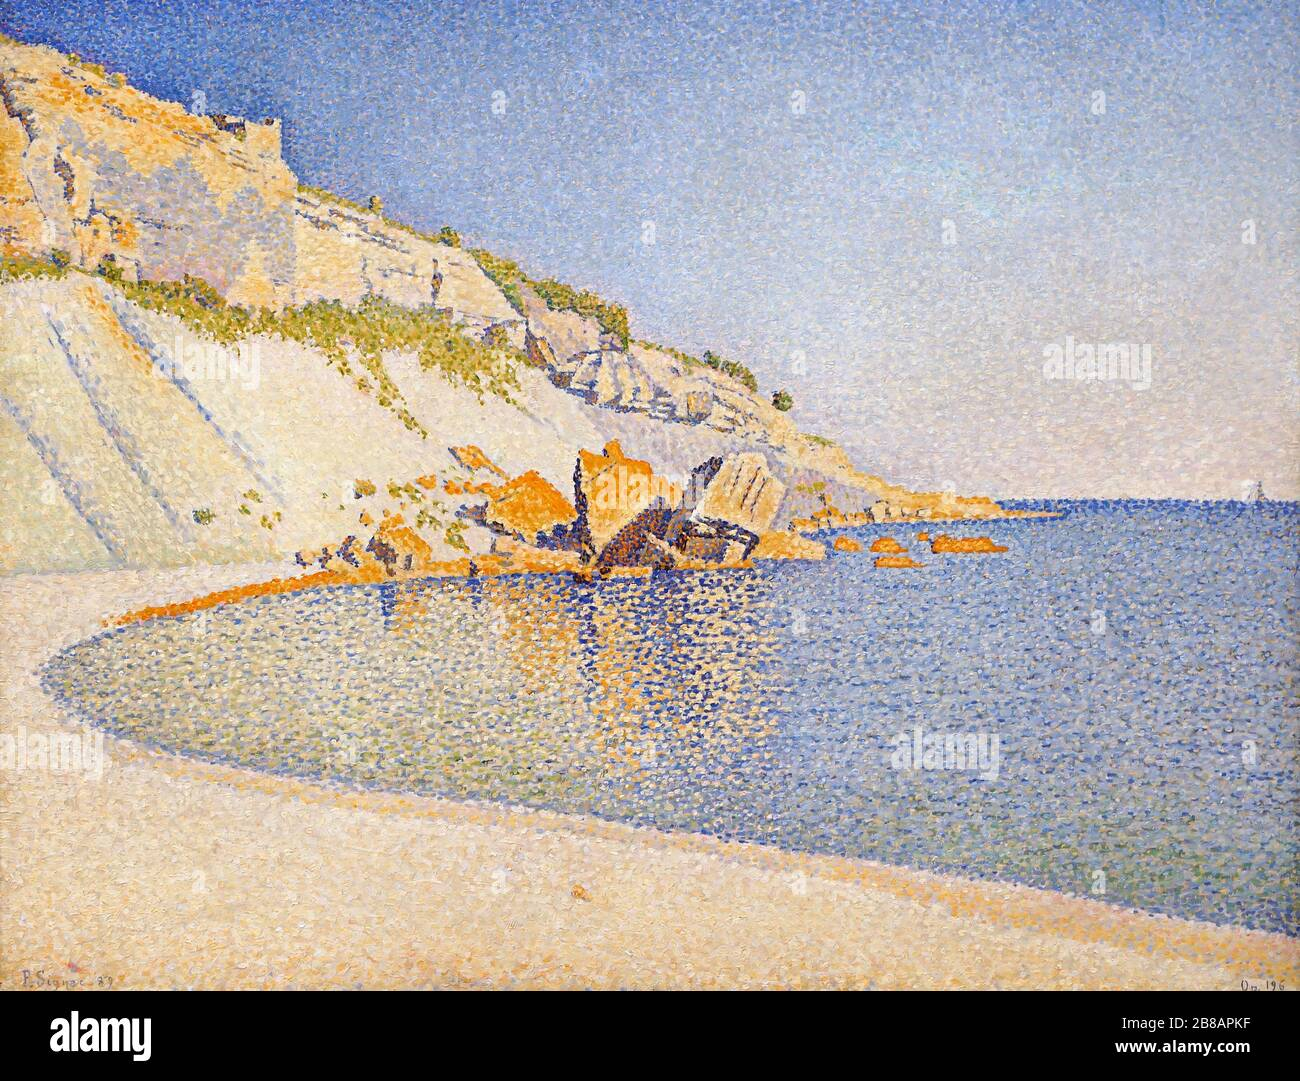 Cassis,Cap Lombard,opus196 (1889) by Paul Signac 1863-1935 French Neo-Impressionist painter Stock Photo